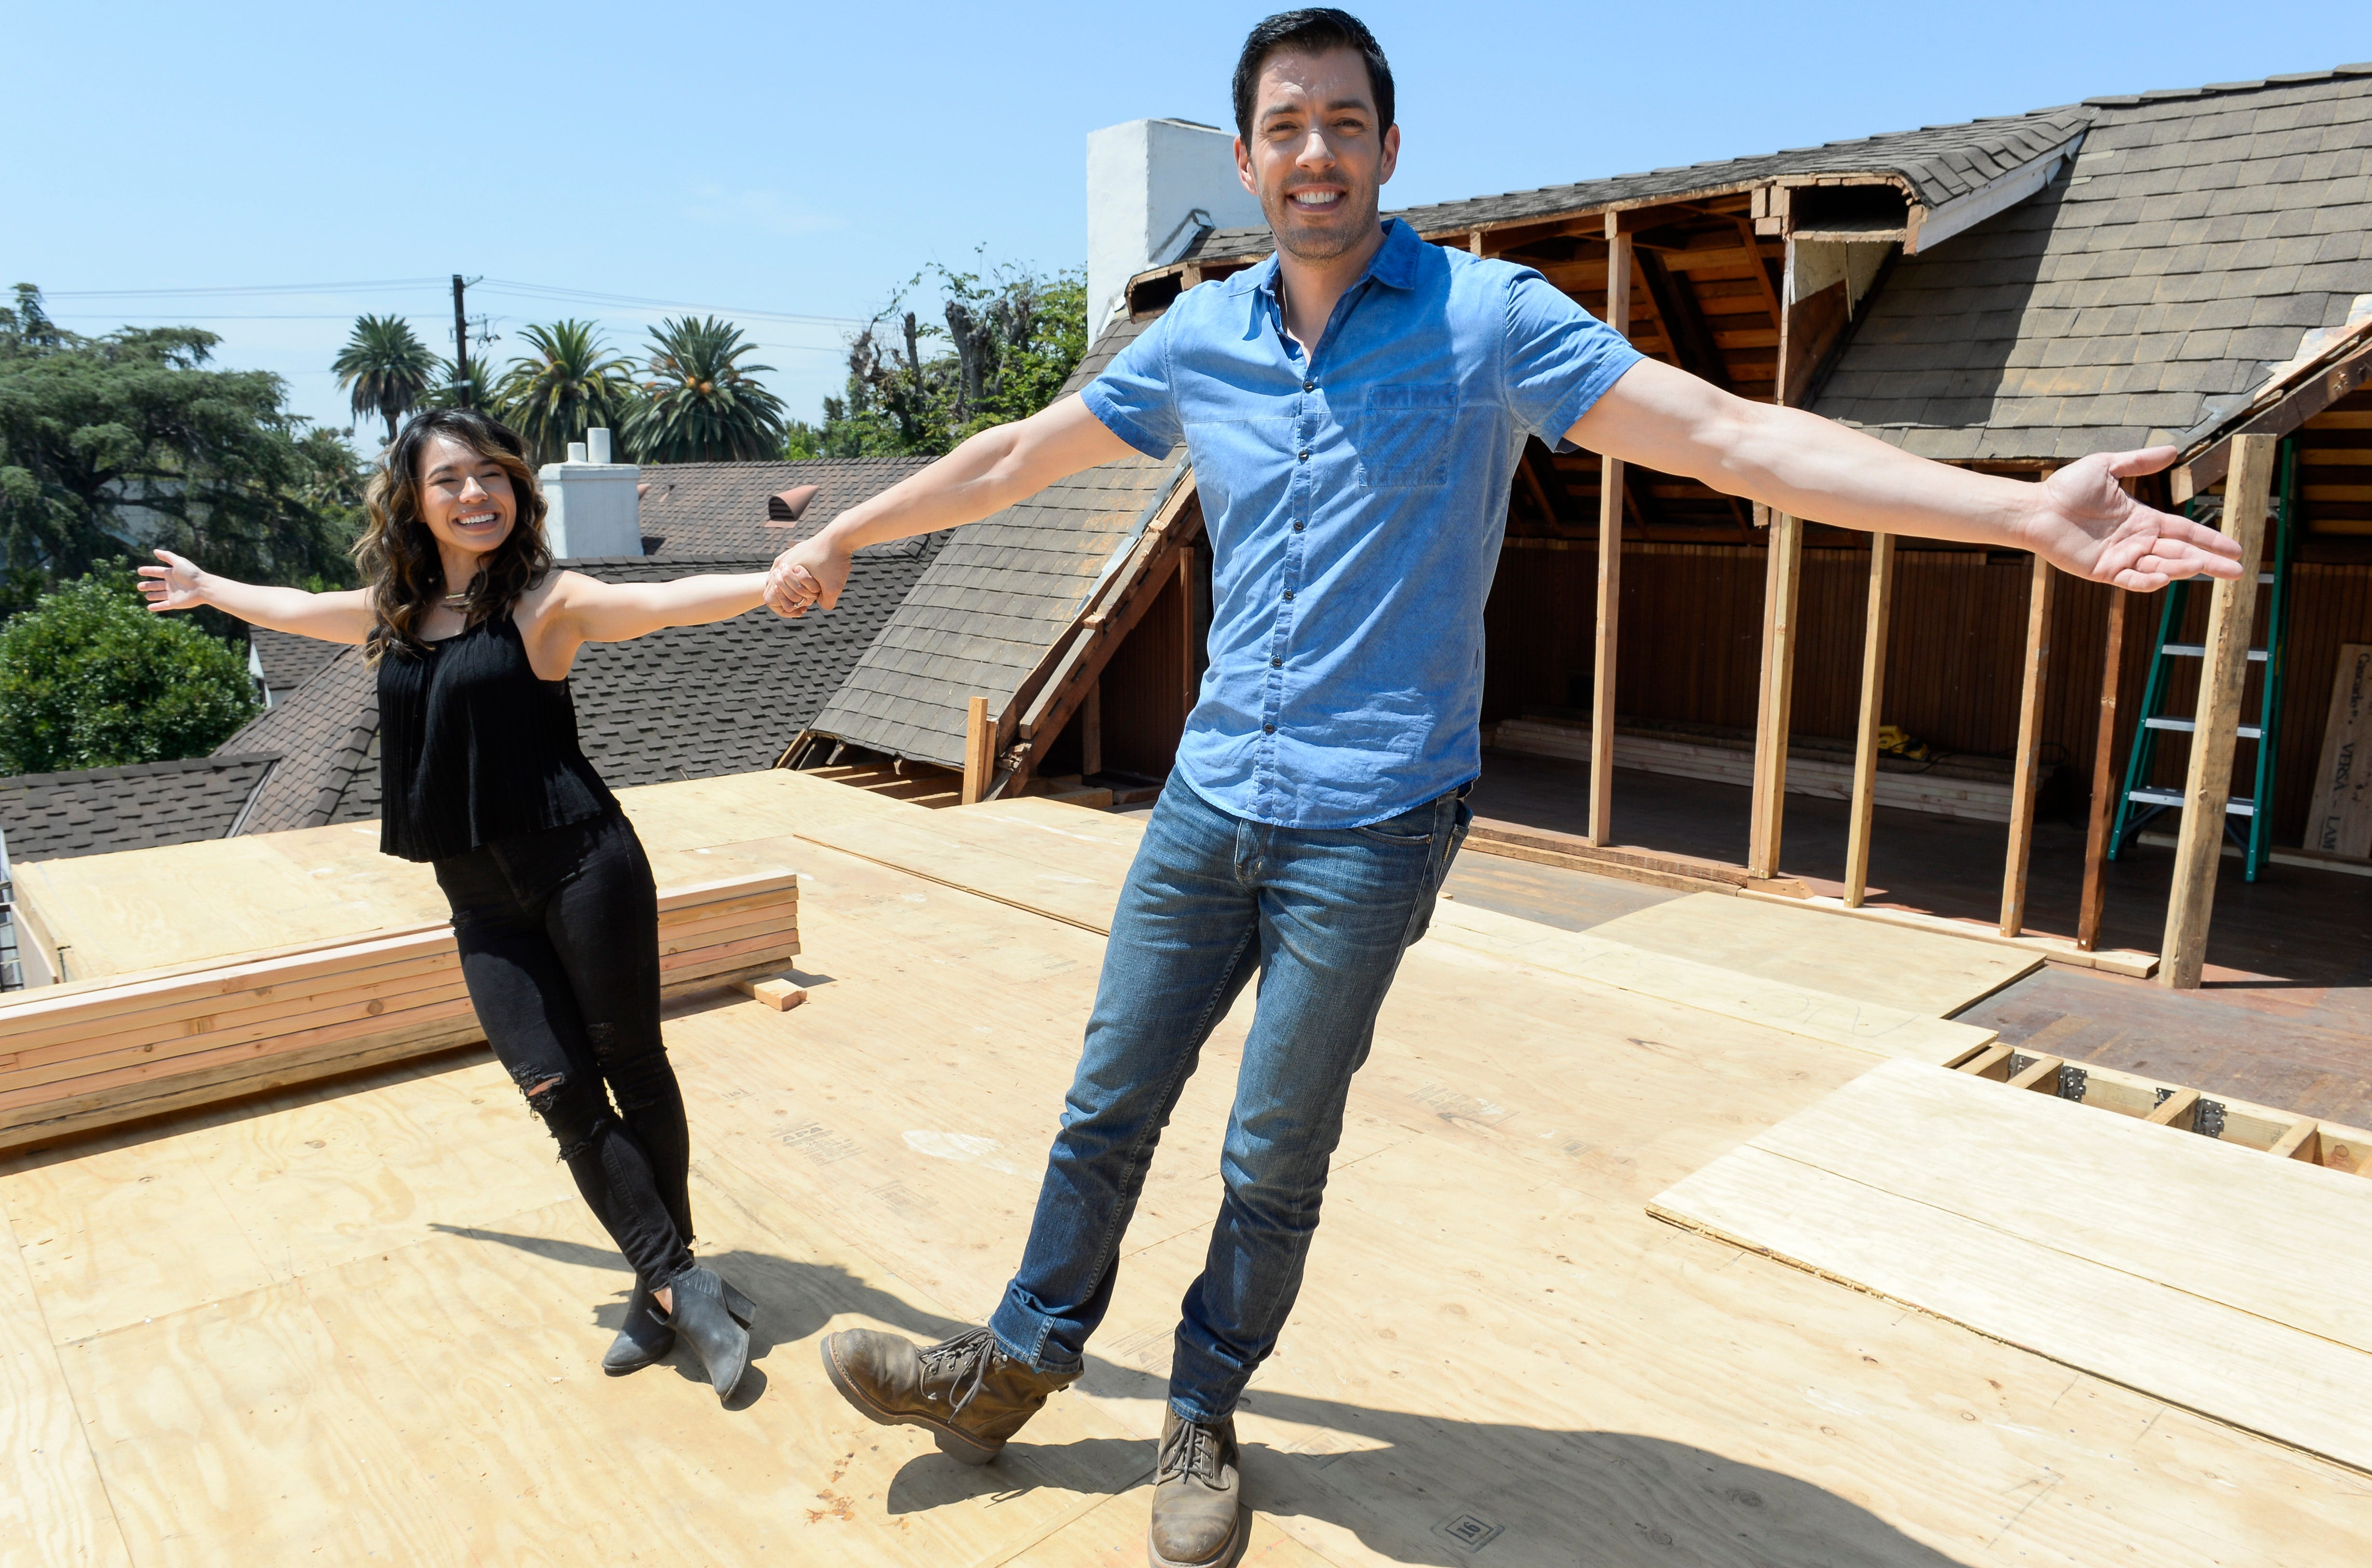 39 property brothers 39 get personal planning 39 drew for How tall are the property brothers